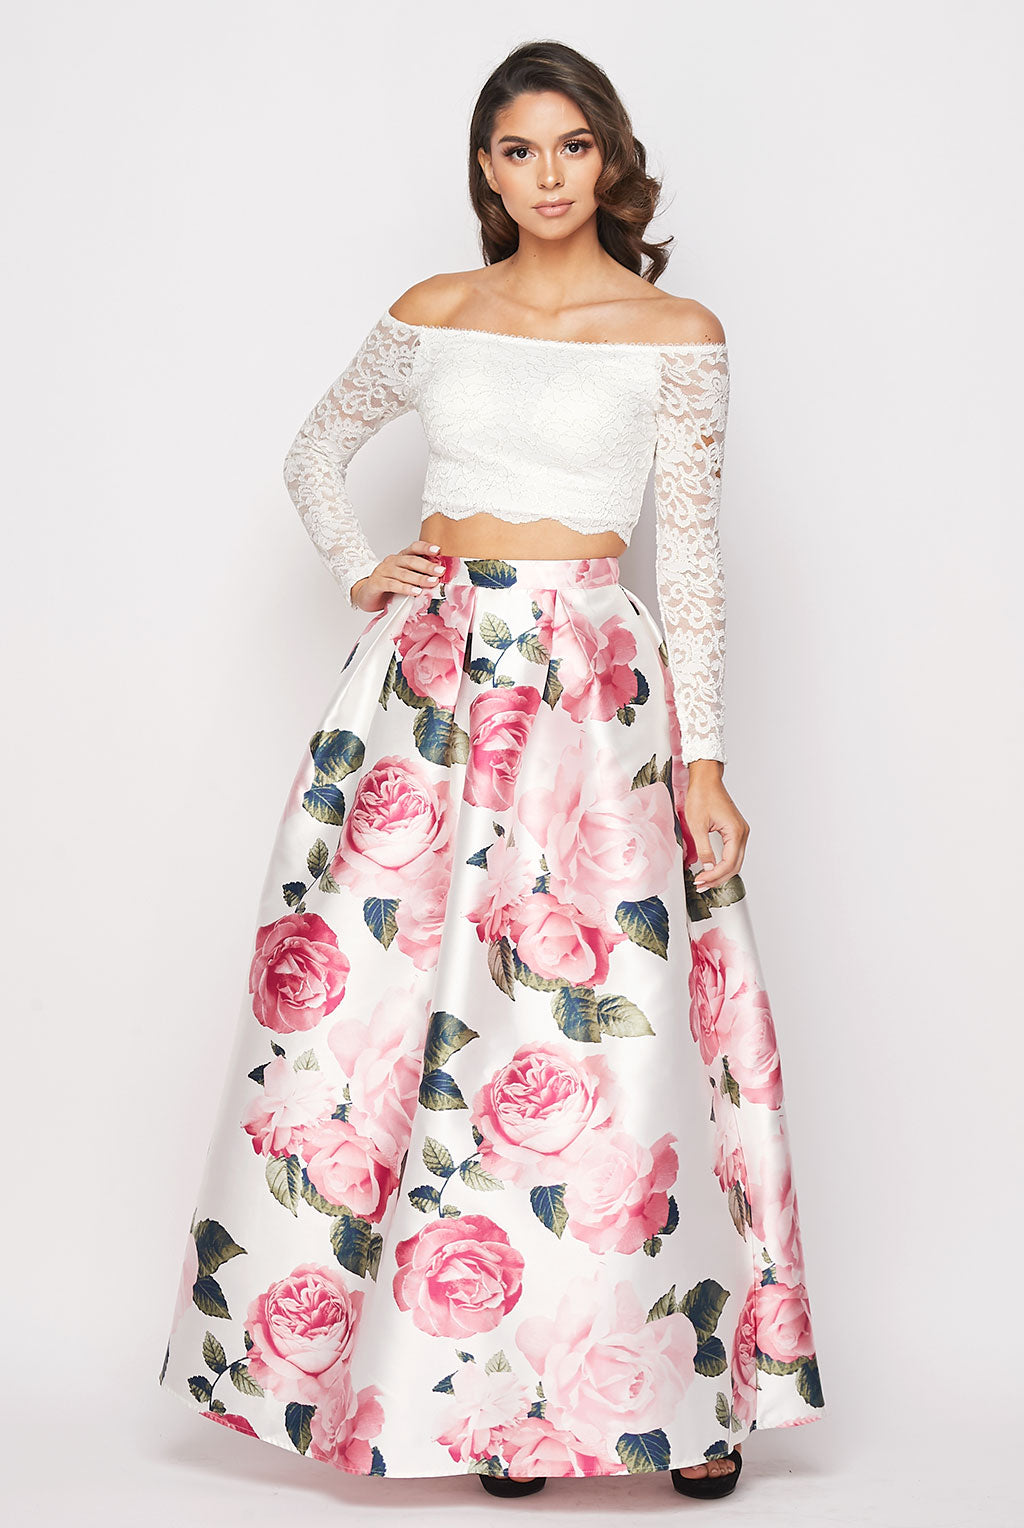 Teeze Me | Two-Piece Lace and Floral Gown | White/Blush